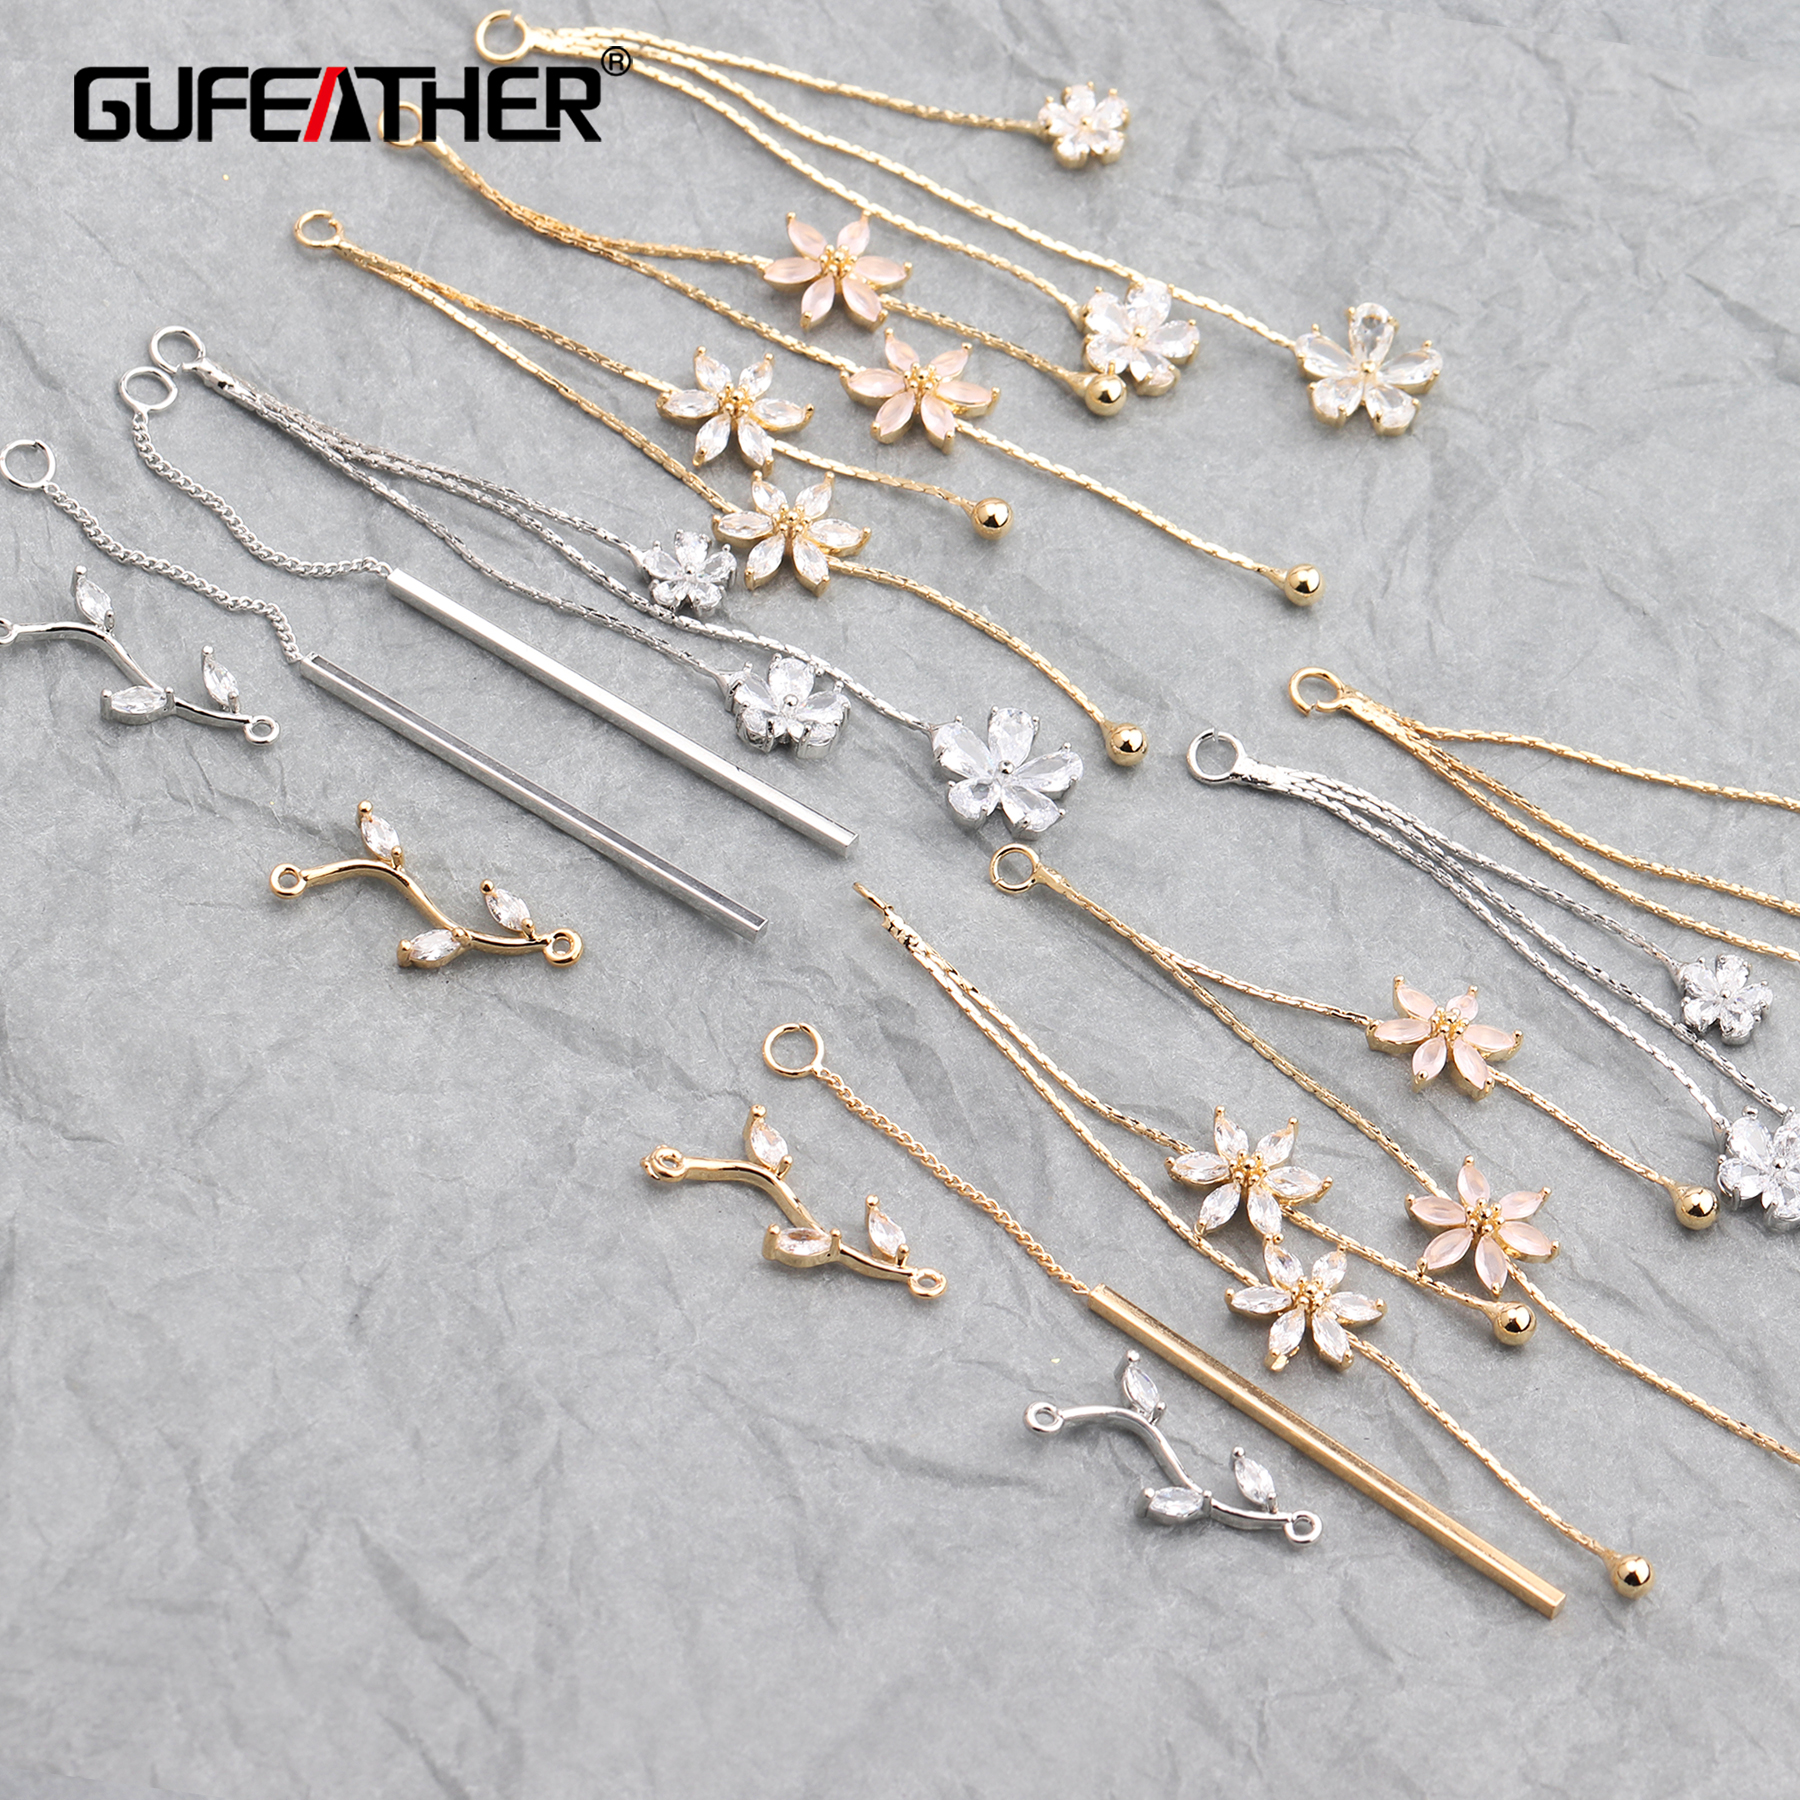 GUFEATHER M579,jewelry Accessories,18k Gold Plated,zircon,hand Made,jewelry Findings,jewelry Making,diy Earrings,10pcs/lot